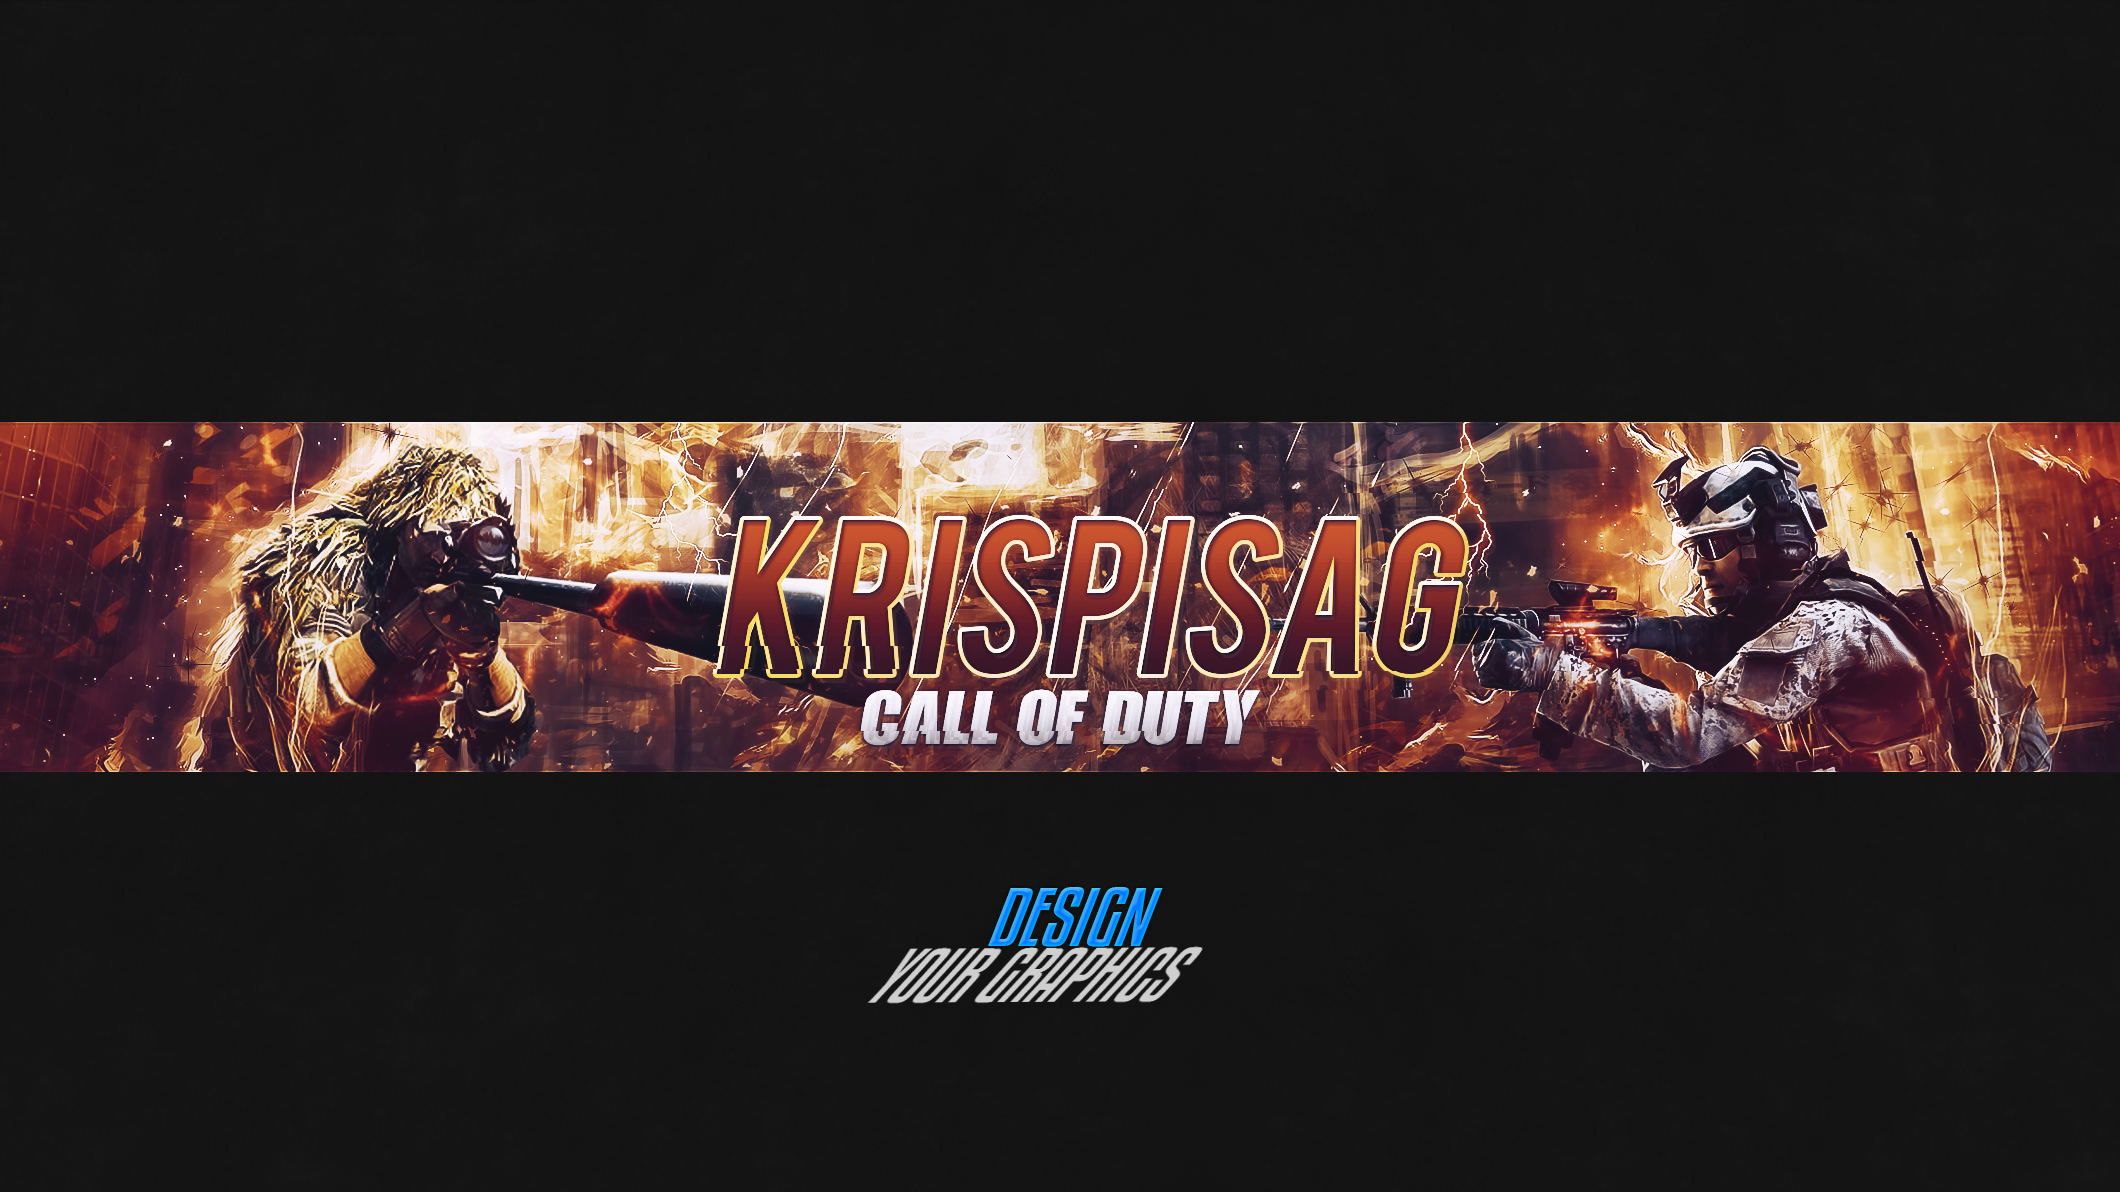 Photoshop poster design youtube -  Call Of Duty Youtube Banner Photoshop Psd By Cagbcn